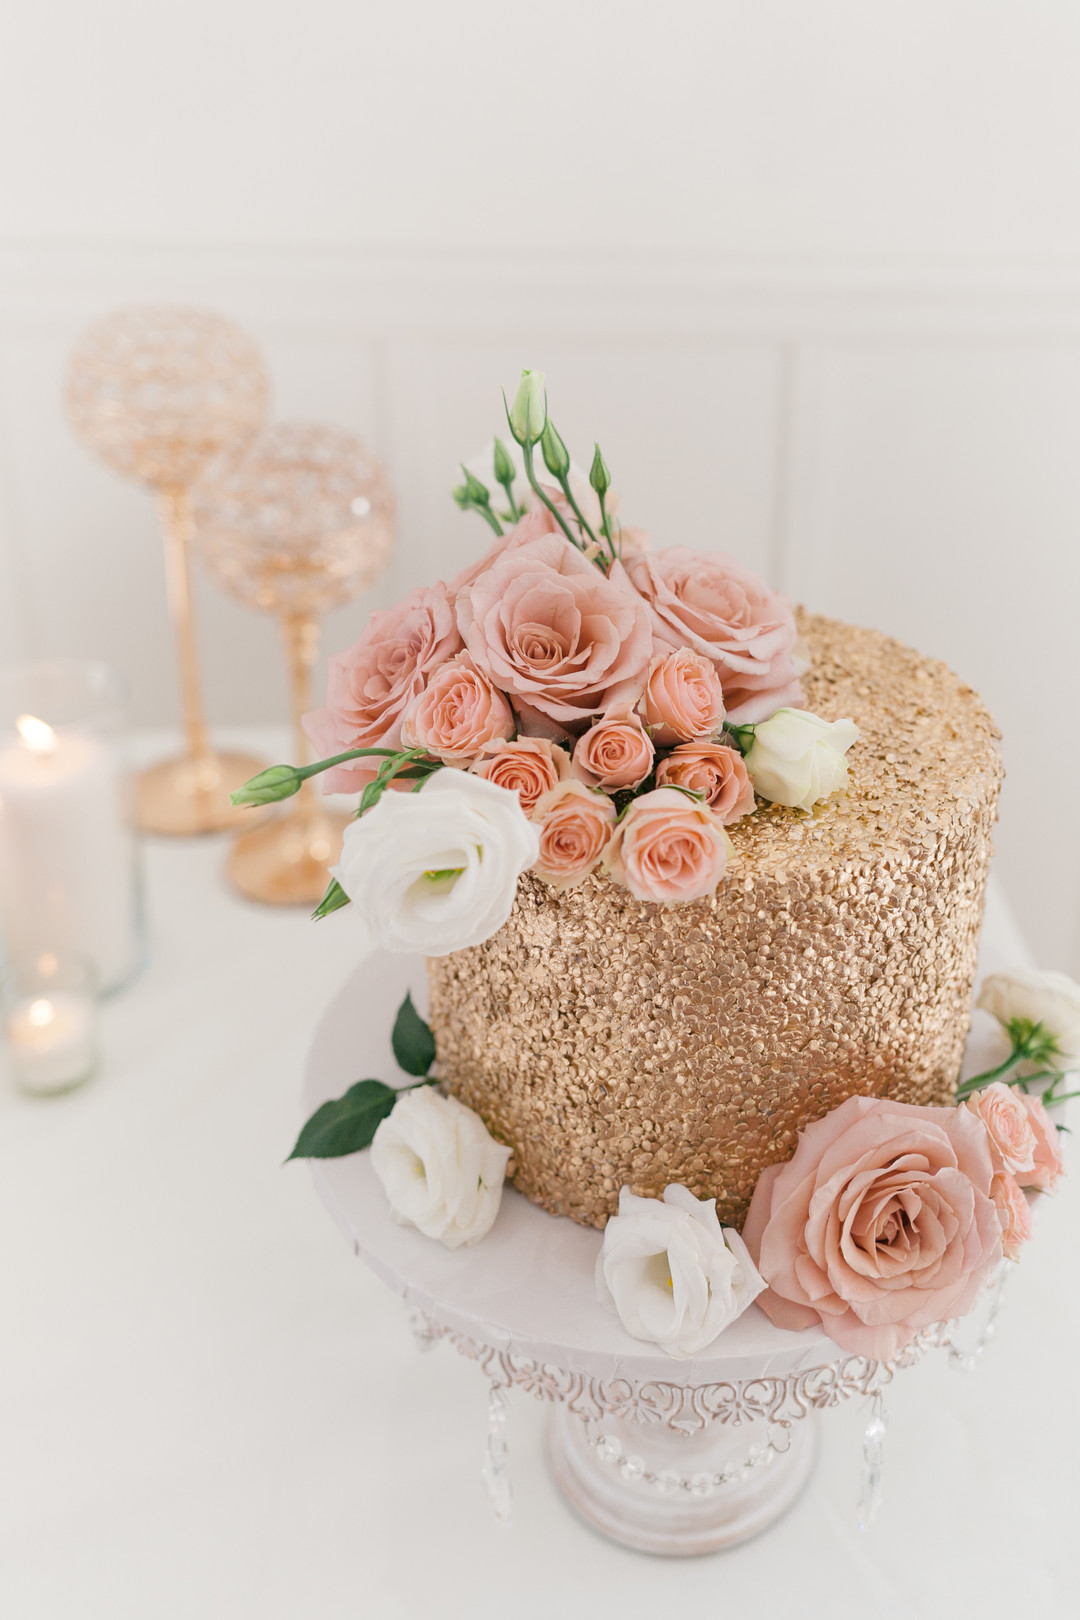 Rose and gold modern wedding styled shoot captured by Janet D Photography. See more wedding color ideas at CHItheeWED.com